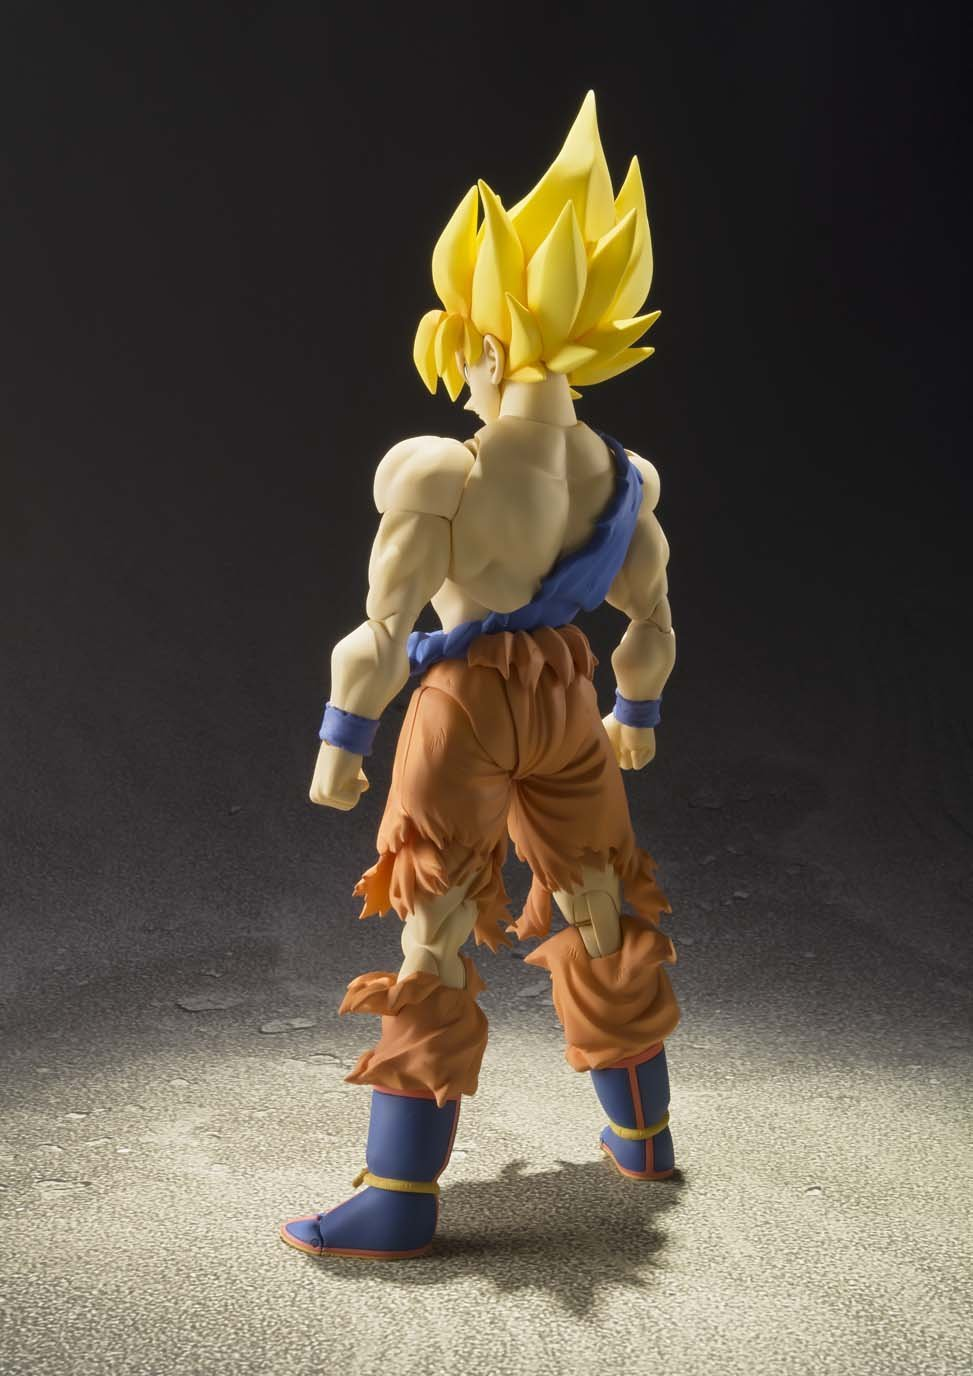 S.H. Figuarts – Super Saiyan Son Goku Warrior Awakening